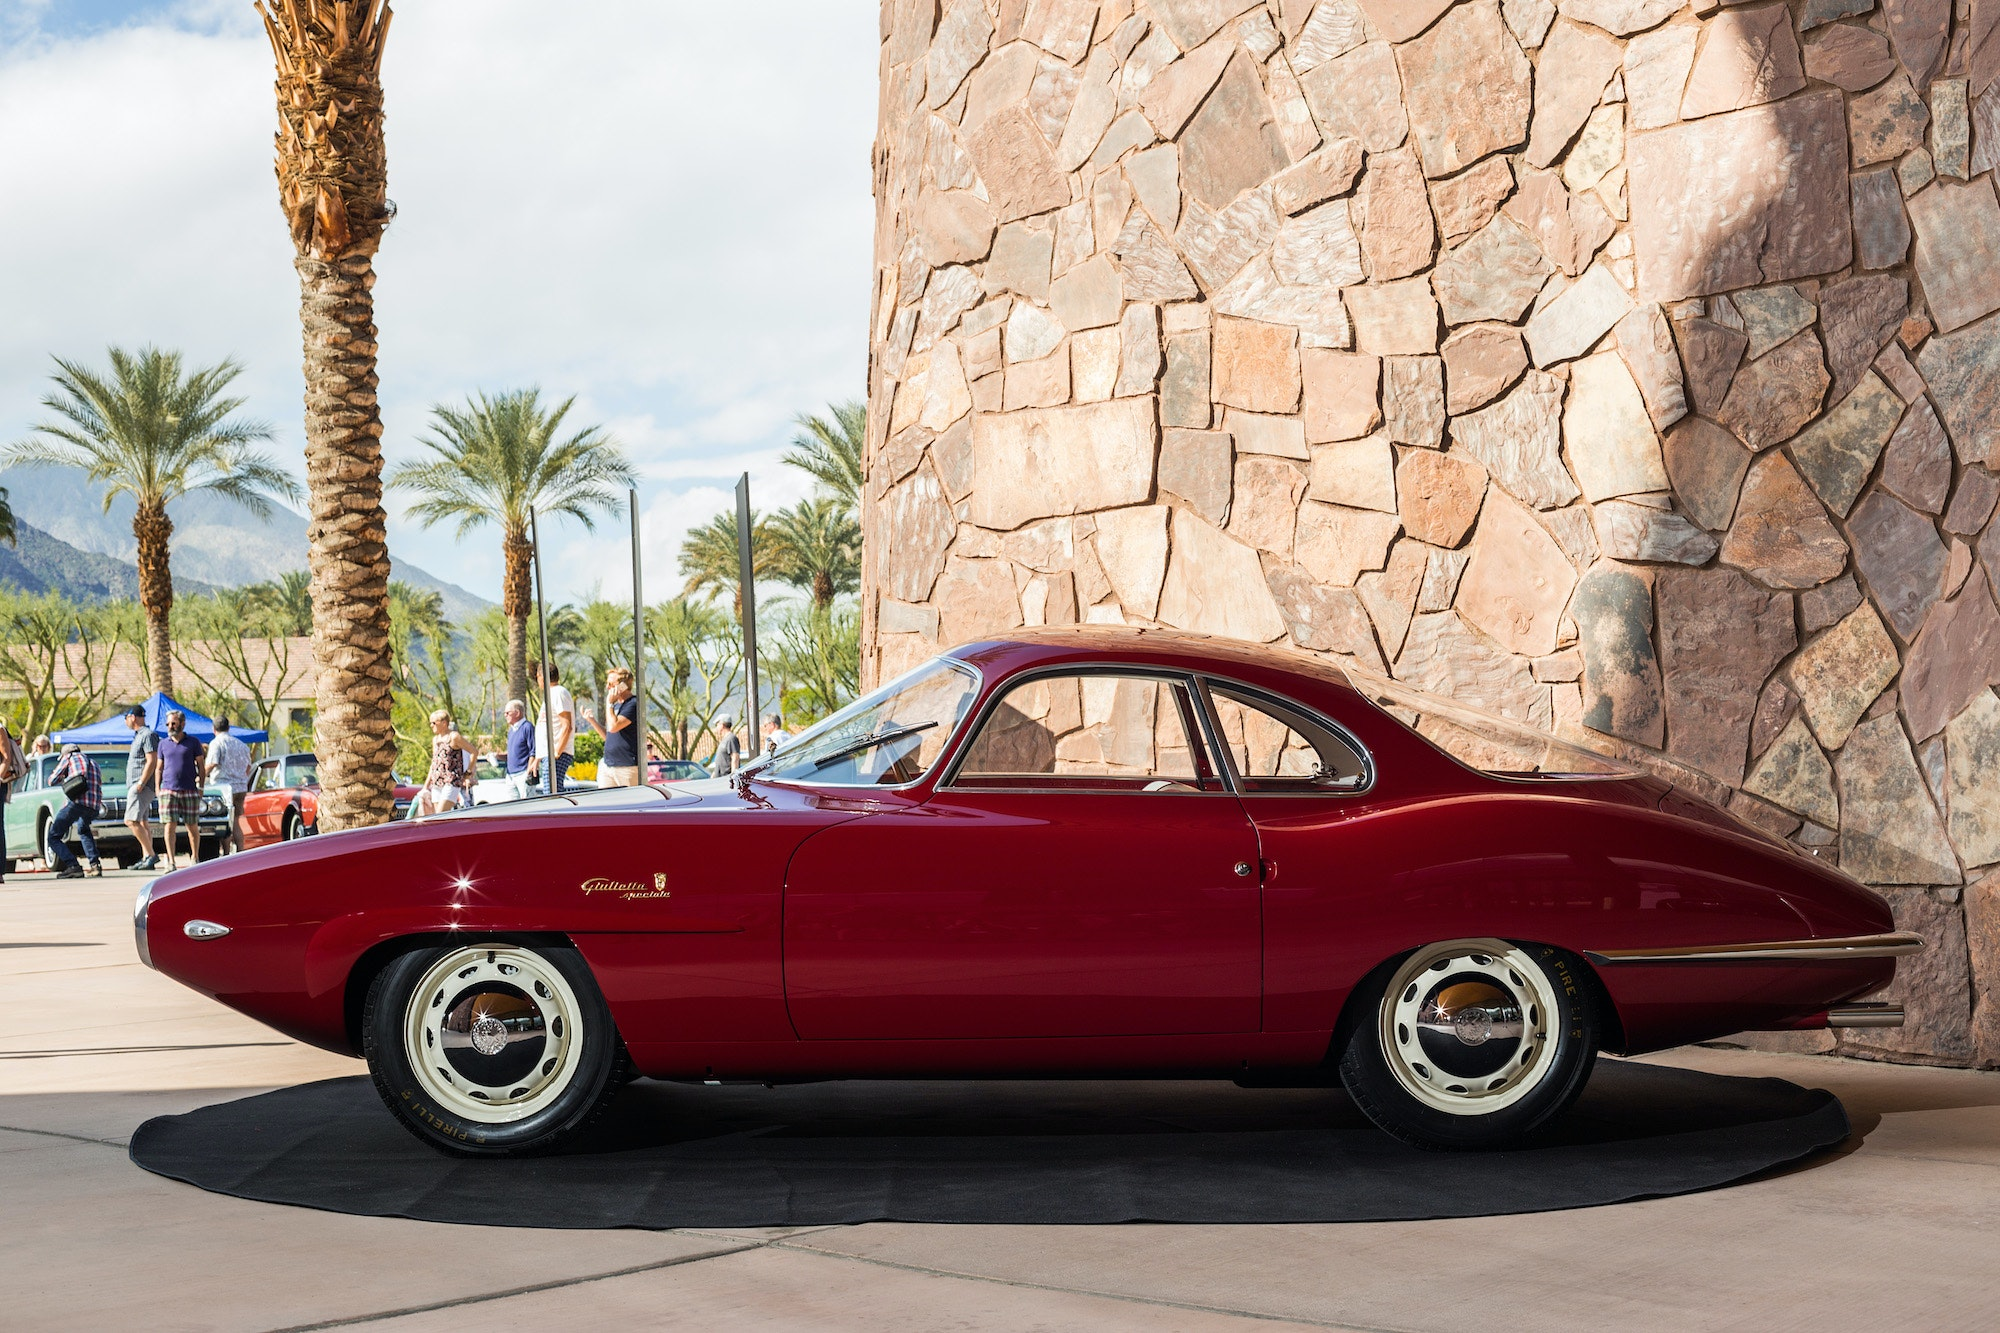 The 1957 Alfa Romeo Giulietta Sprint Speciale Bertone prototype at the Modernism Week Vintage Car Show.